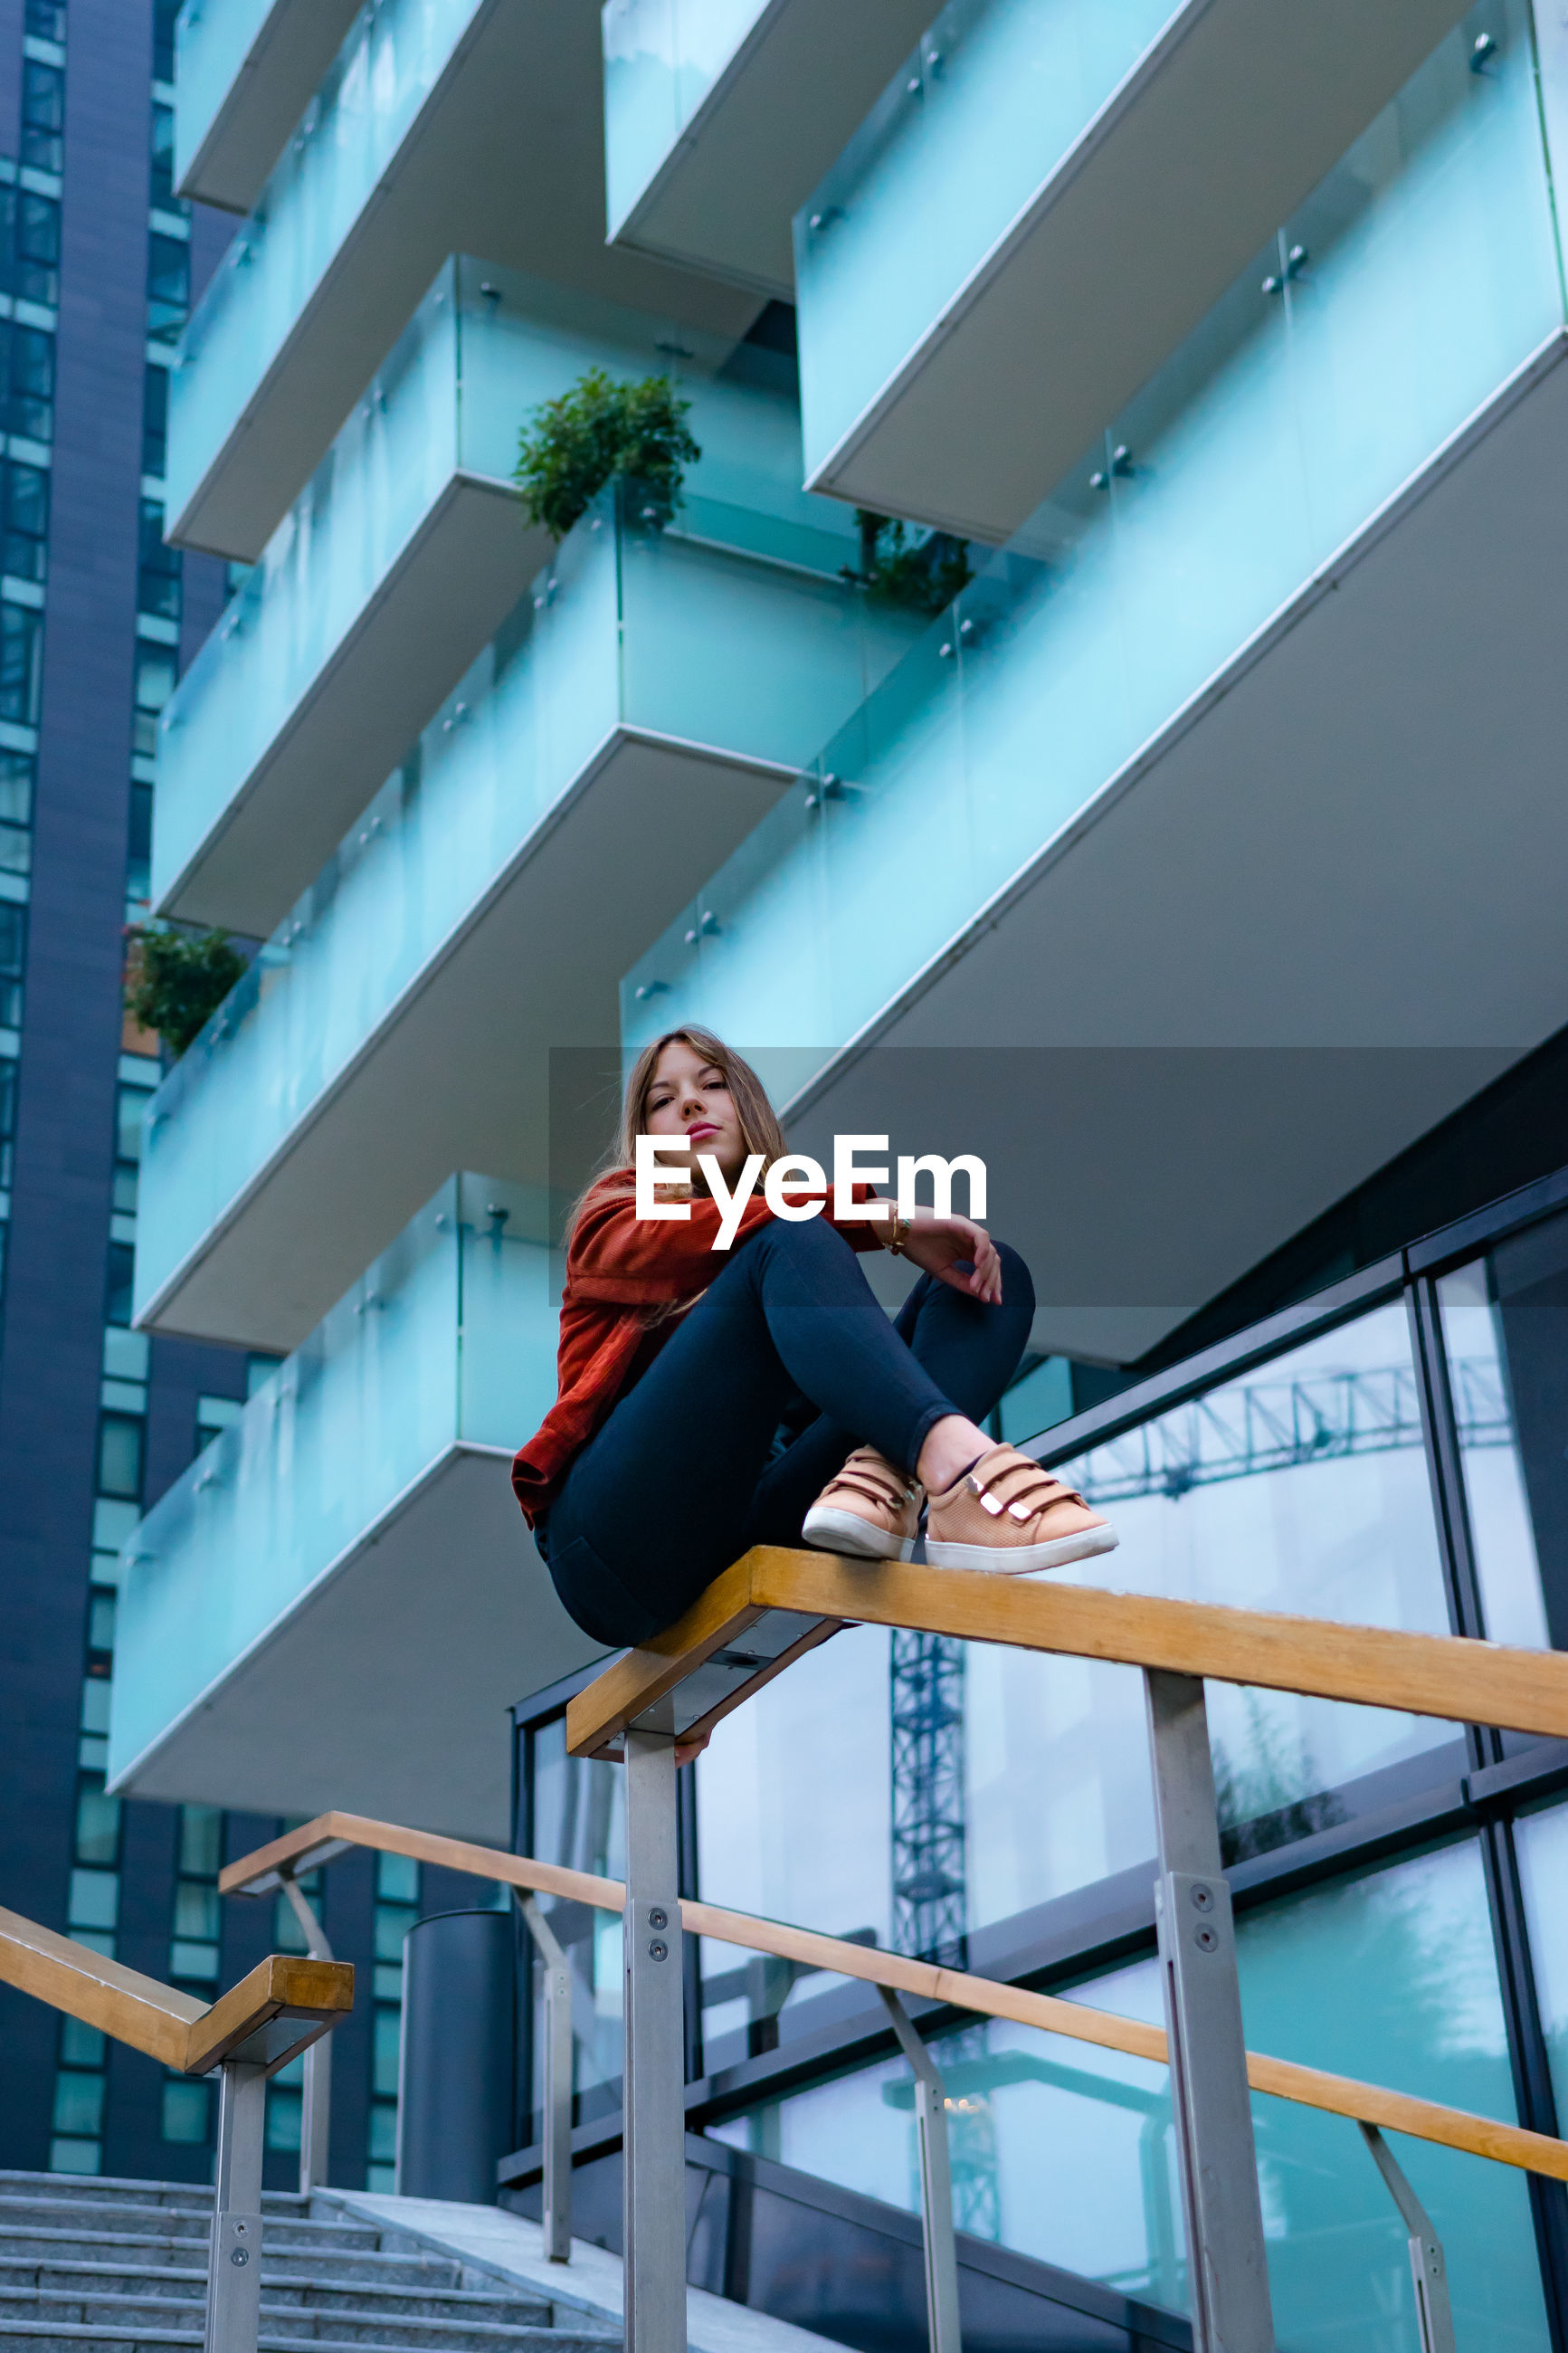 Low angle view of woman sitting on railing against building in city